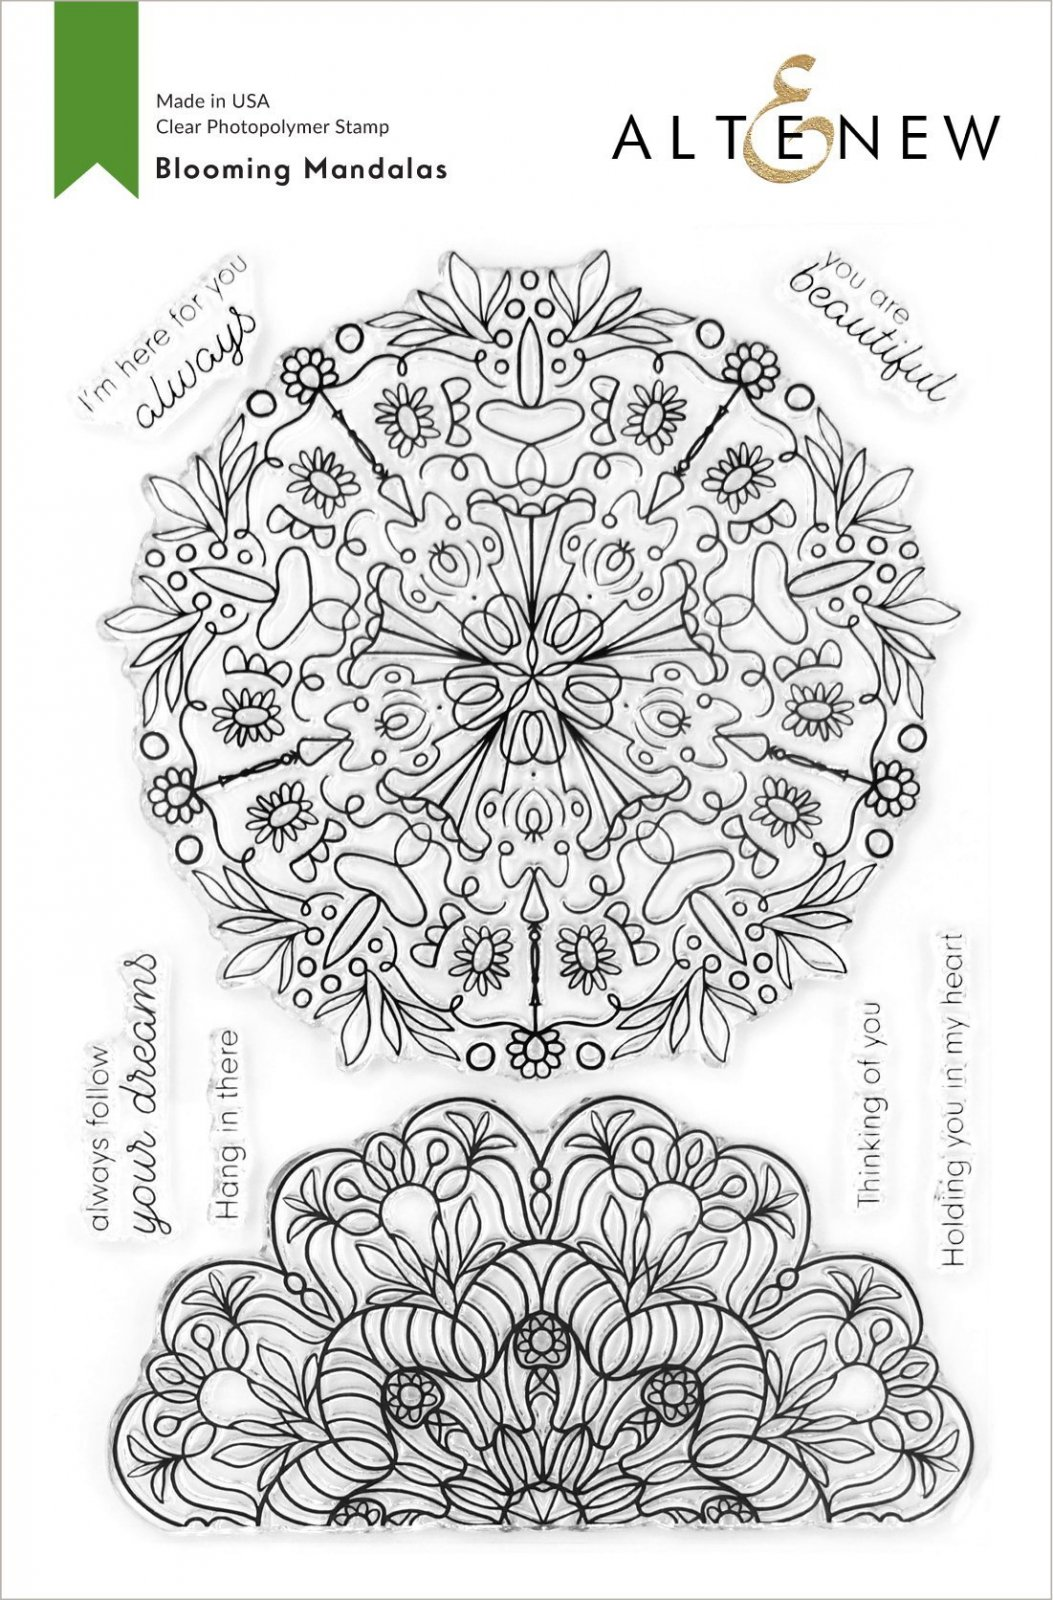 Altenew - Clear Photopolymer Stamps - Blooming Mandalas Stamp Set